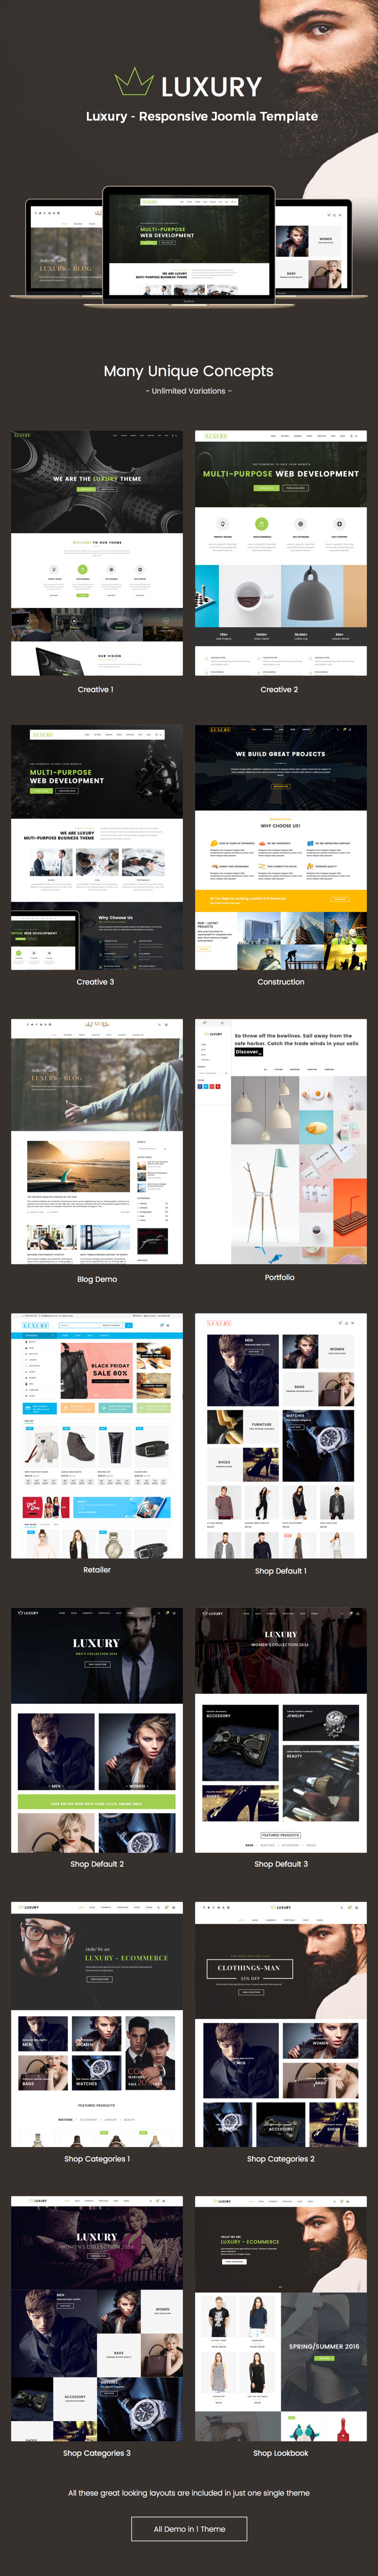 Luxury - Fashion Virtuemart Joomla theme